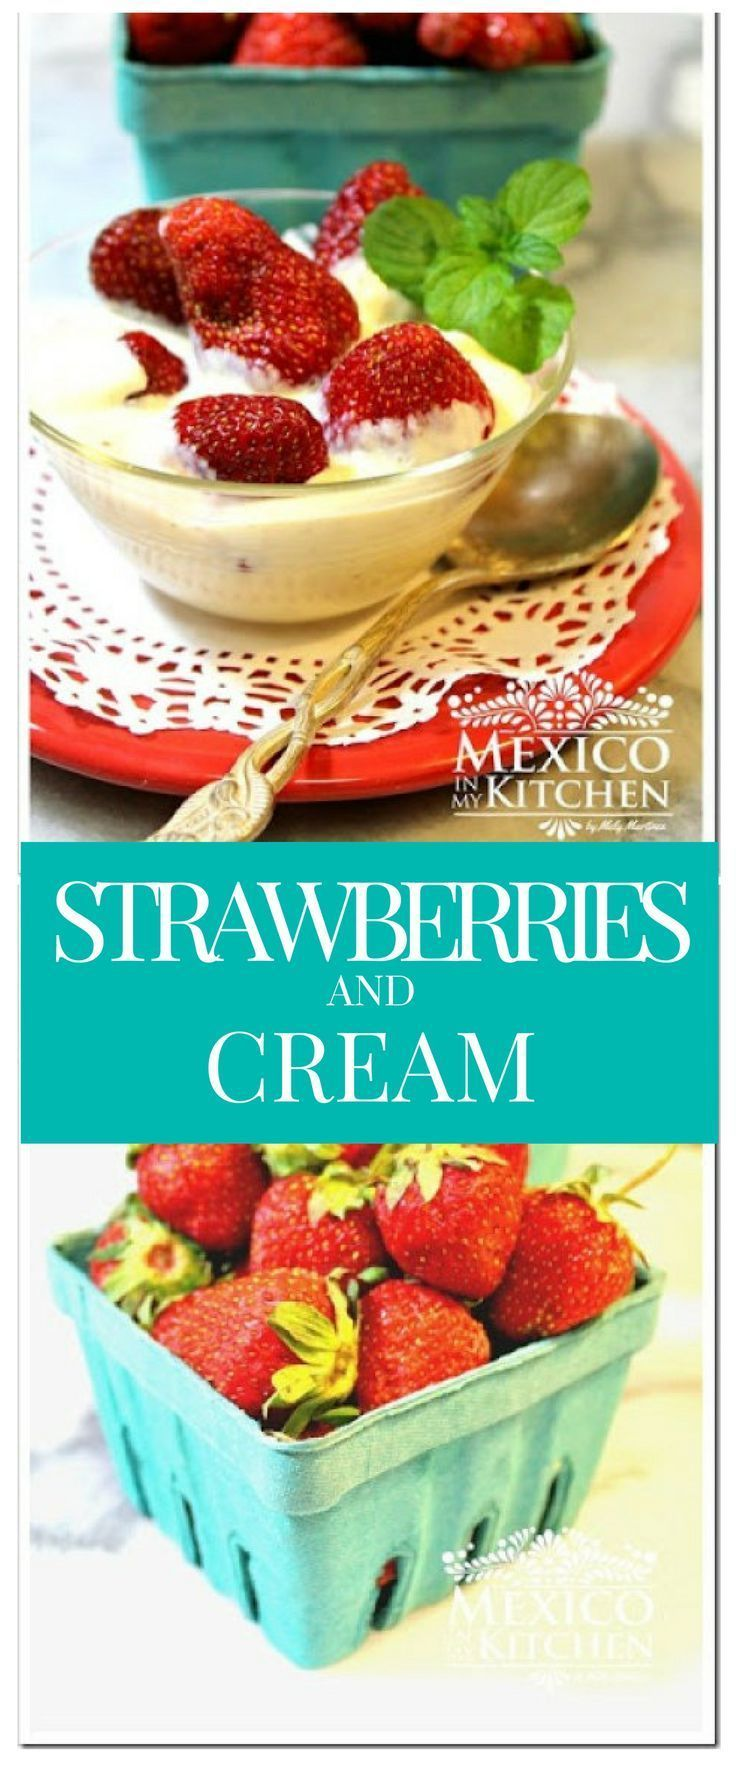 Fresas con Crema are one of the most traditional desserts in Mexico. They are a very popular snack and are super quick and easy to make. #recipe #mexican #food #postres